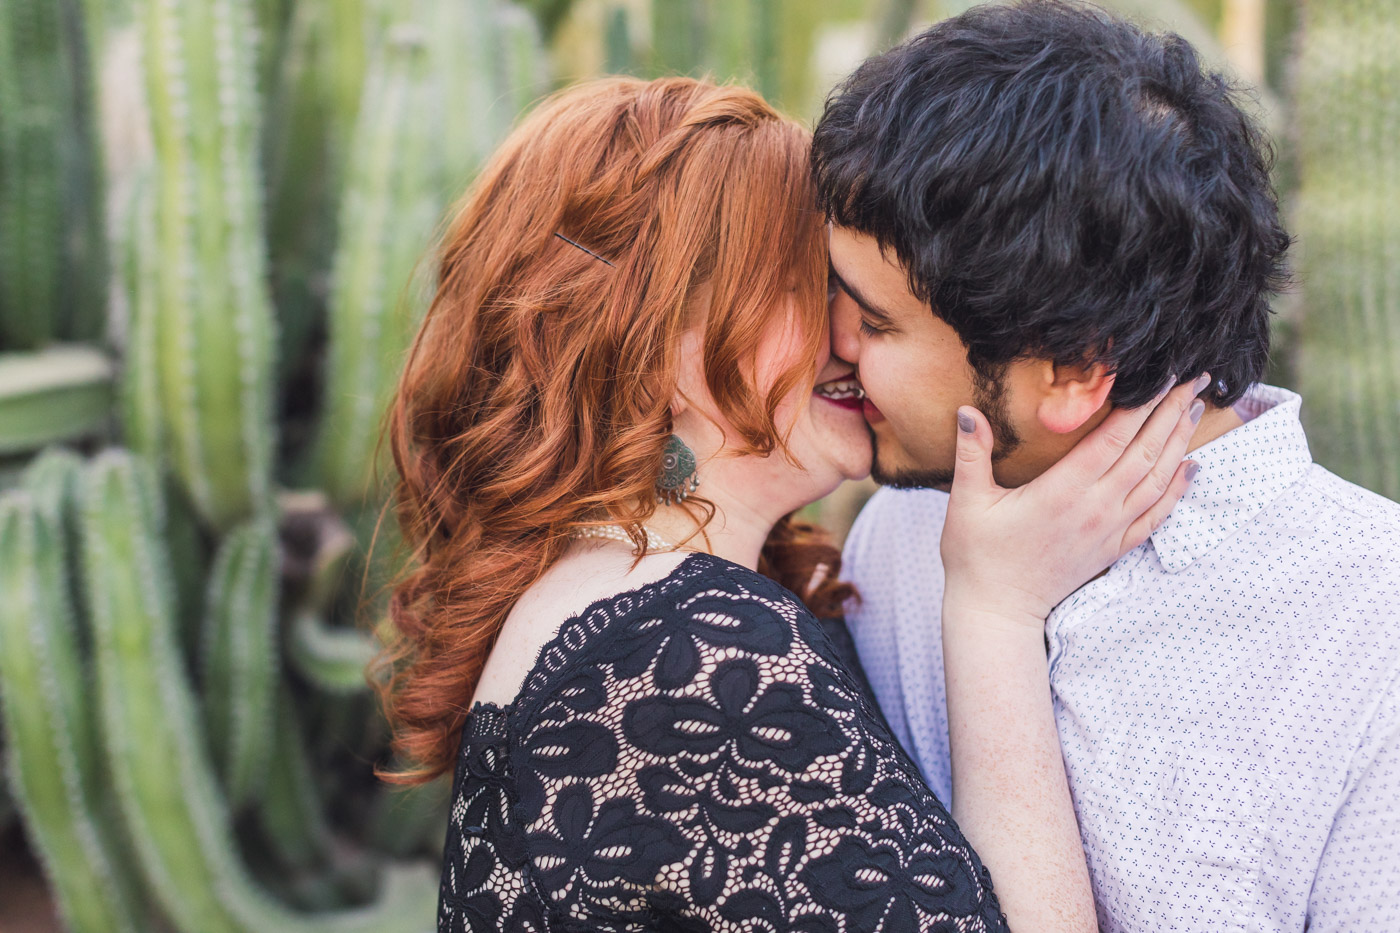 smiling-while-kissing